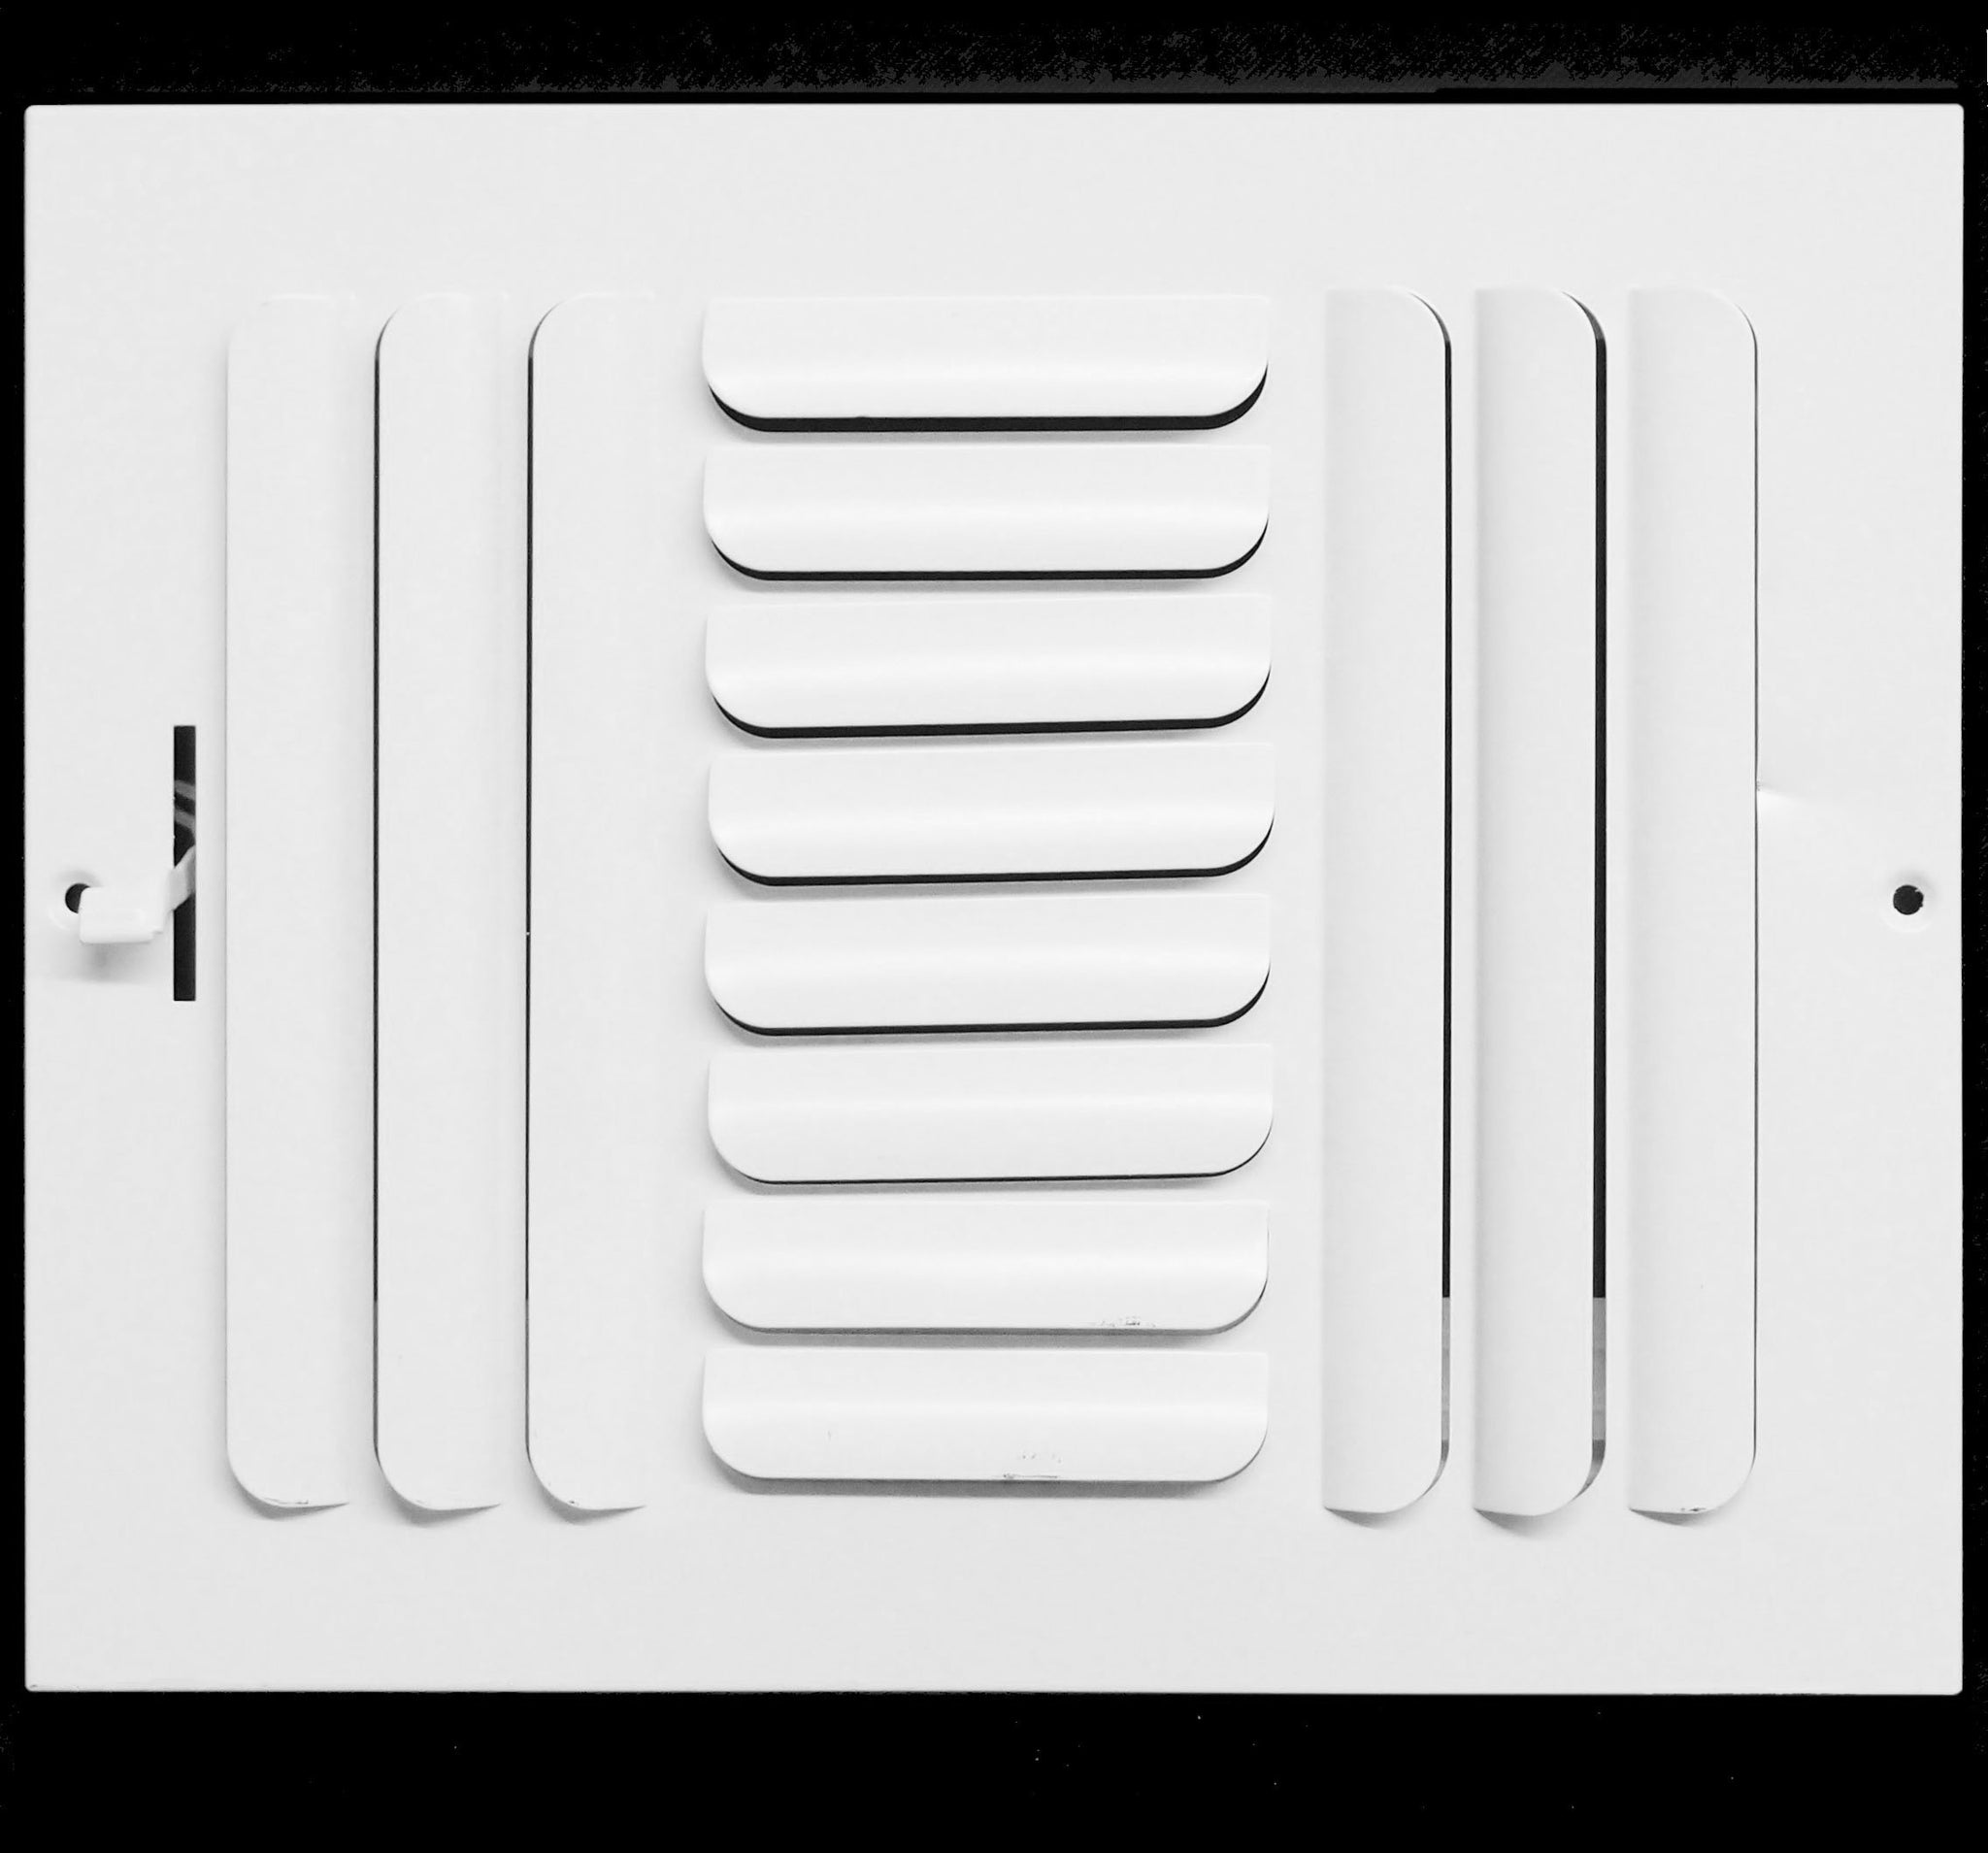 White Sidewall or Ceiling High Airflow Vent Duct Cover 12 X 4 3-Way Fixed Curved Blade AIR Supply Diffuser Grille Register